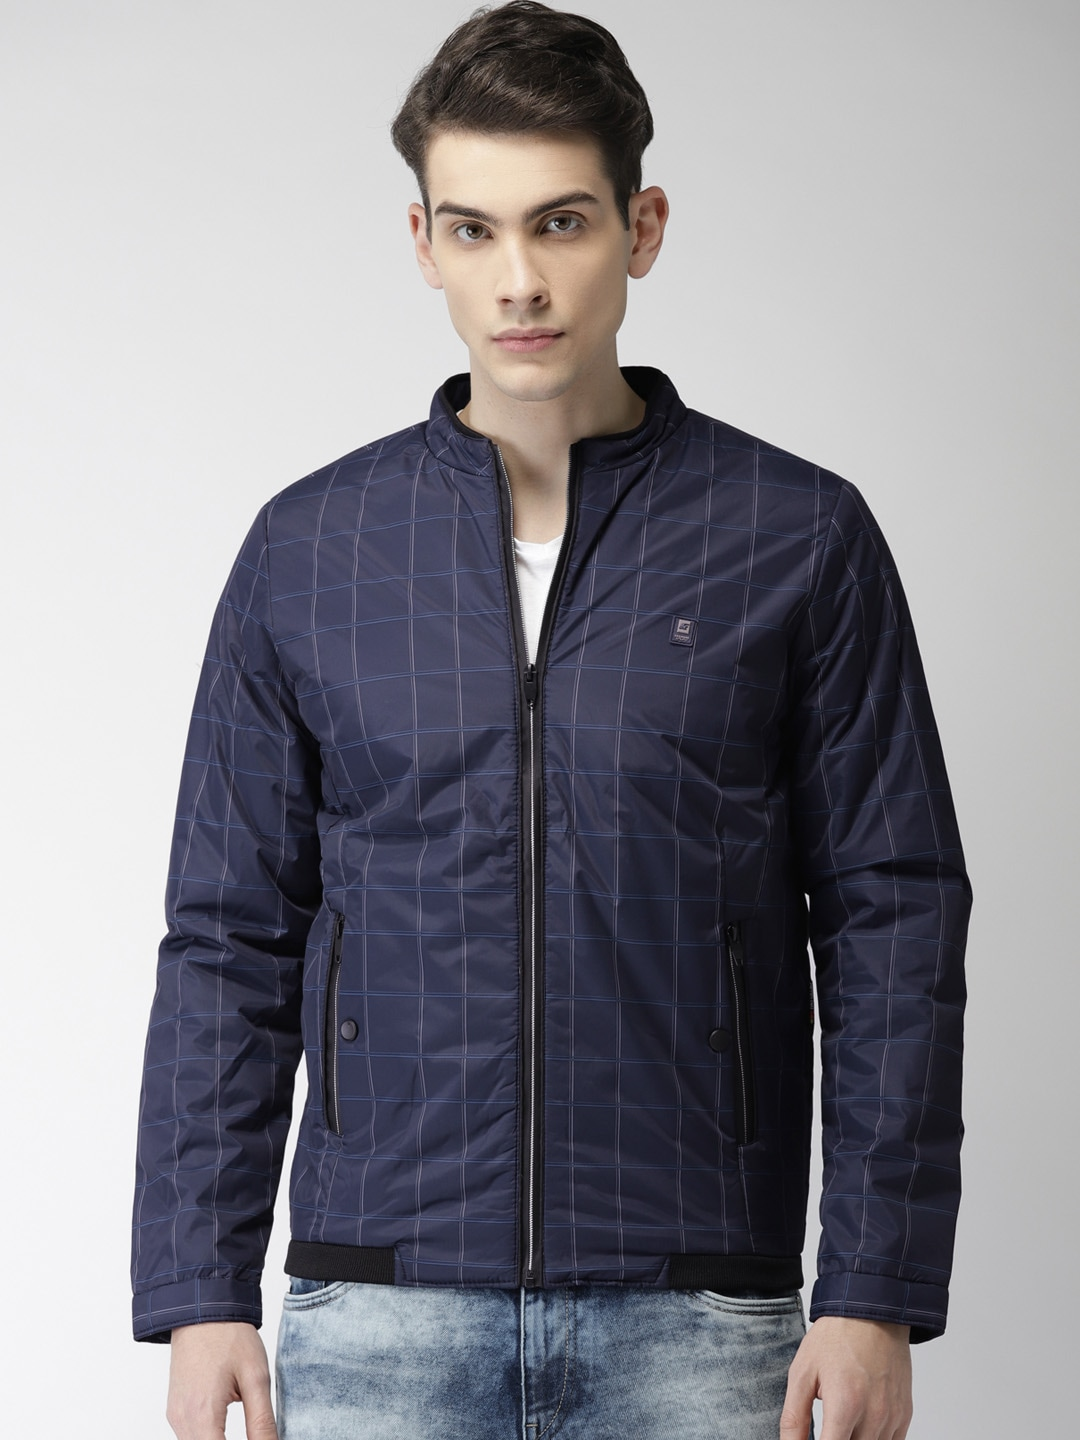 c9f214cef Fort Collins Jacket